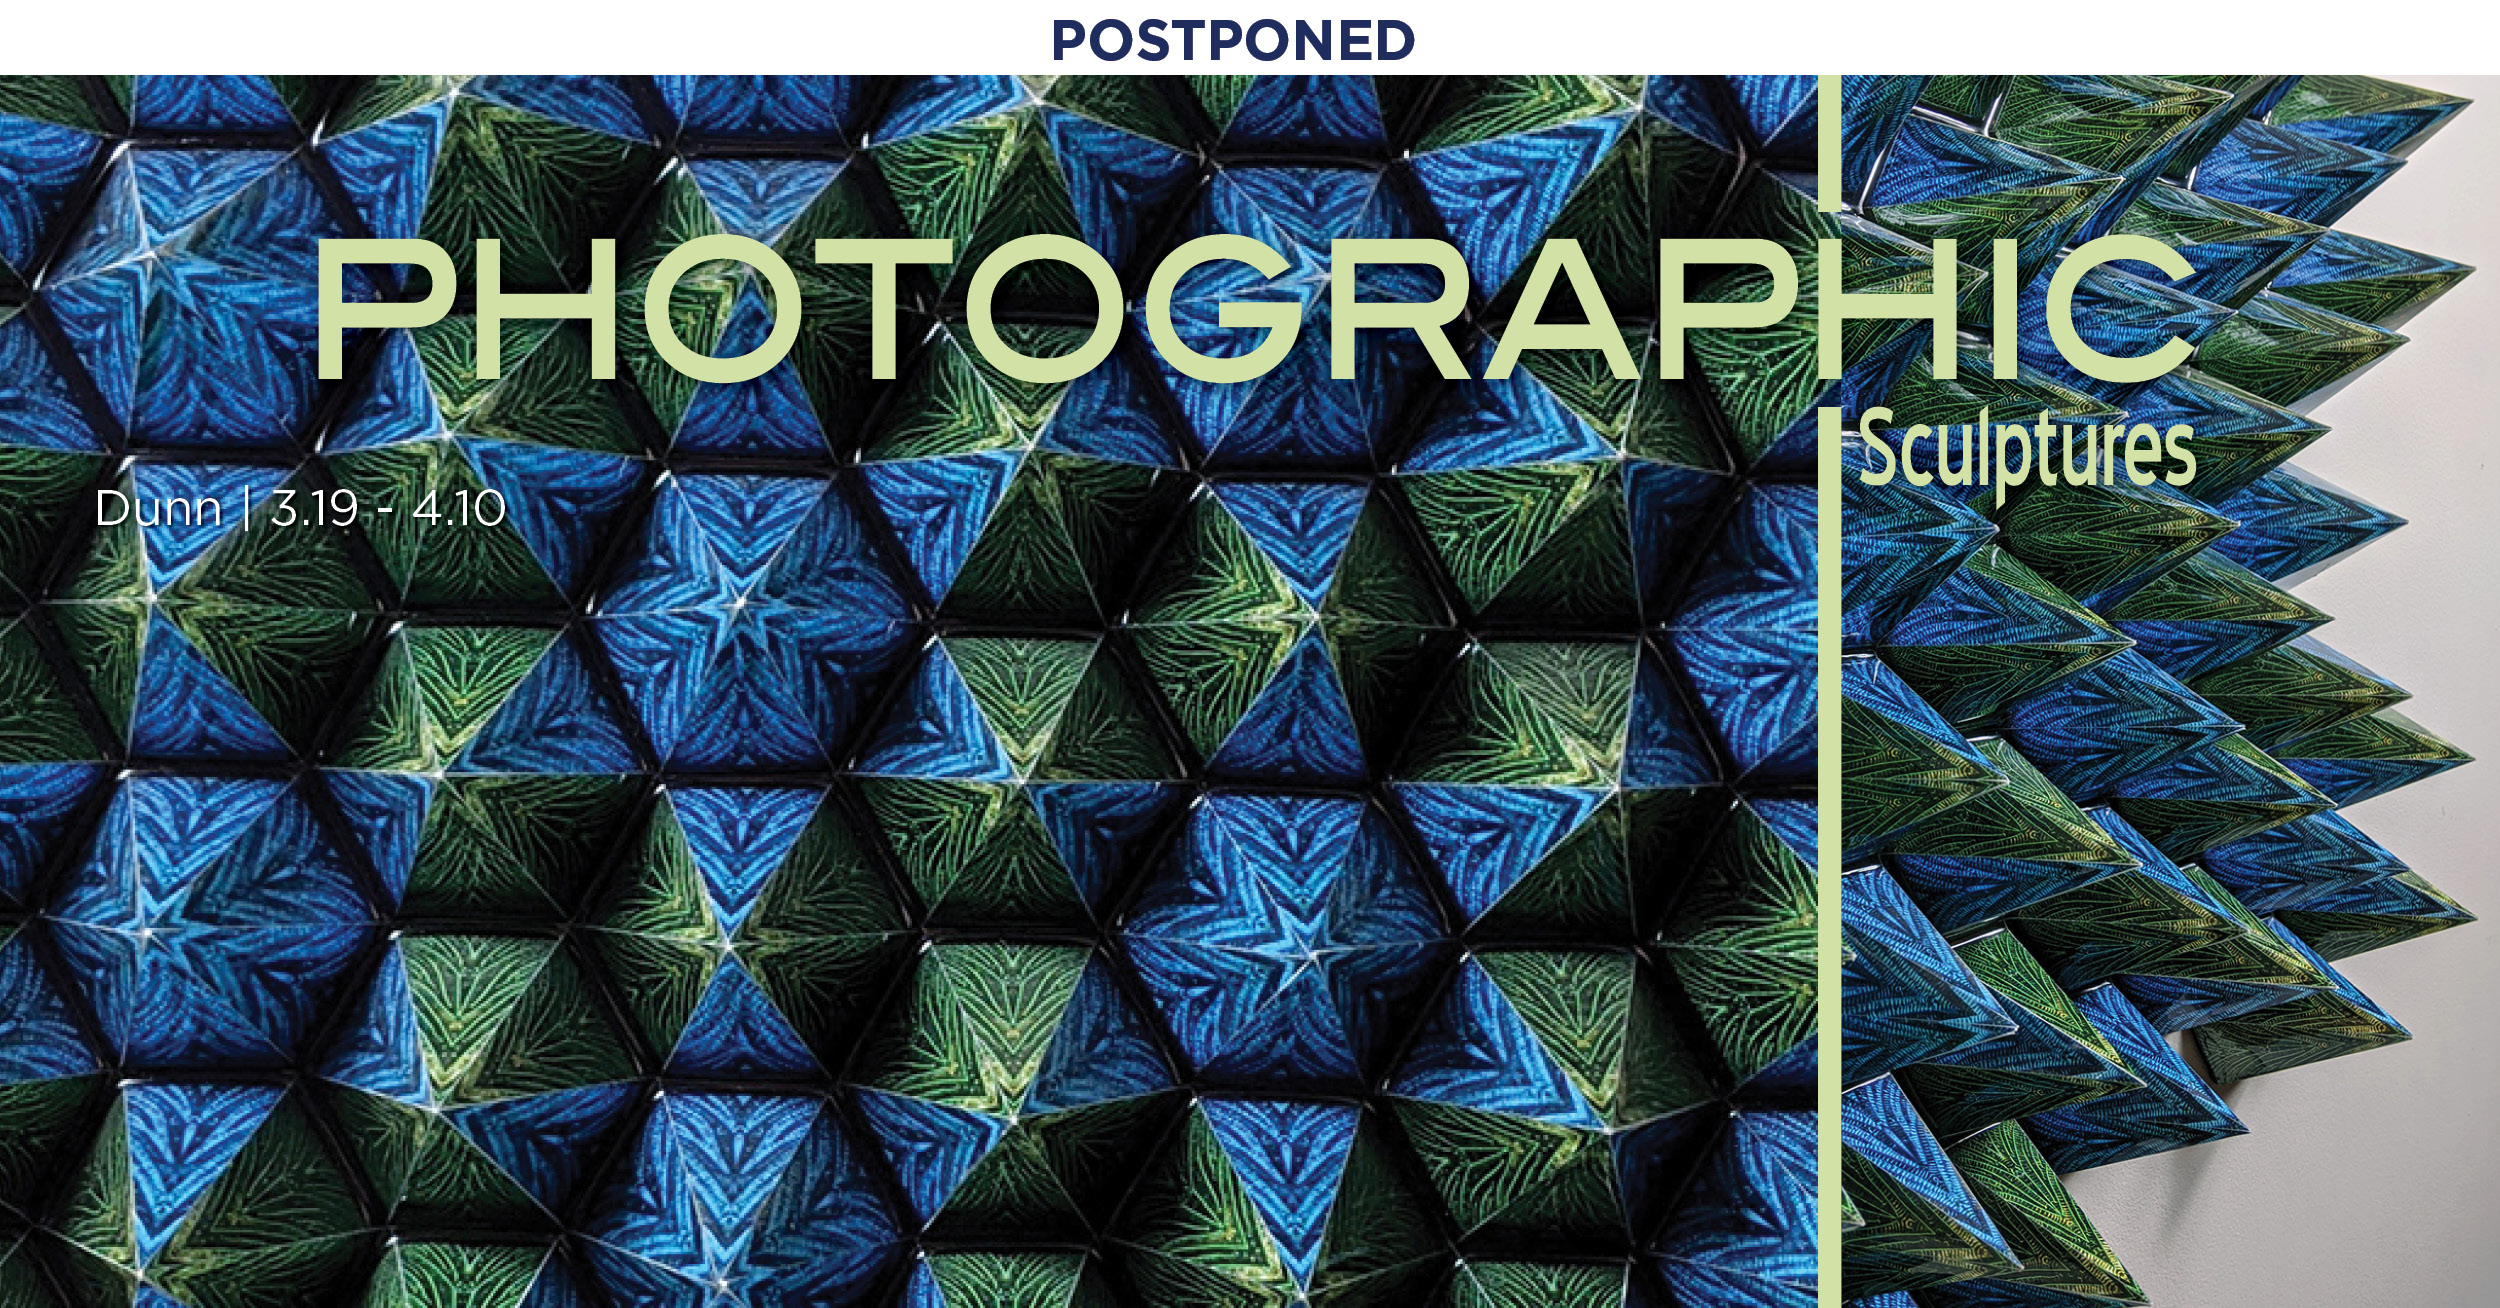 Postponed - Photographic Sculptures by Lauri R. Dunn